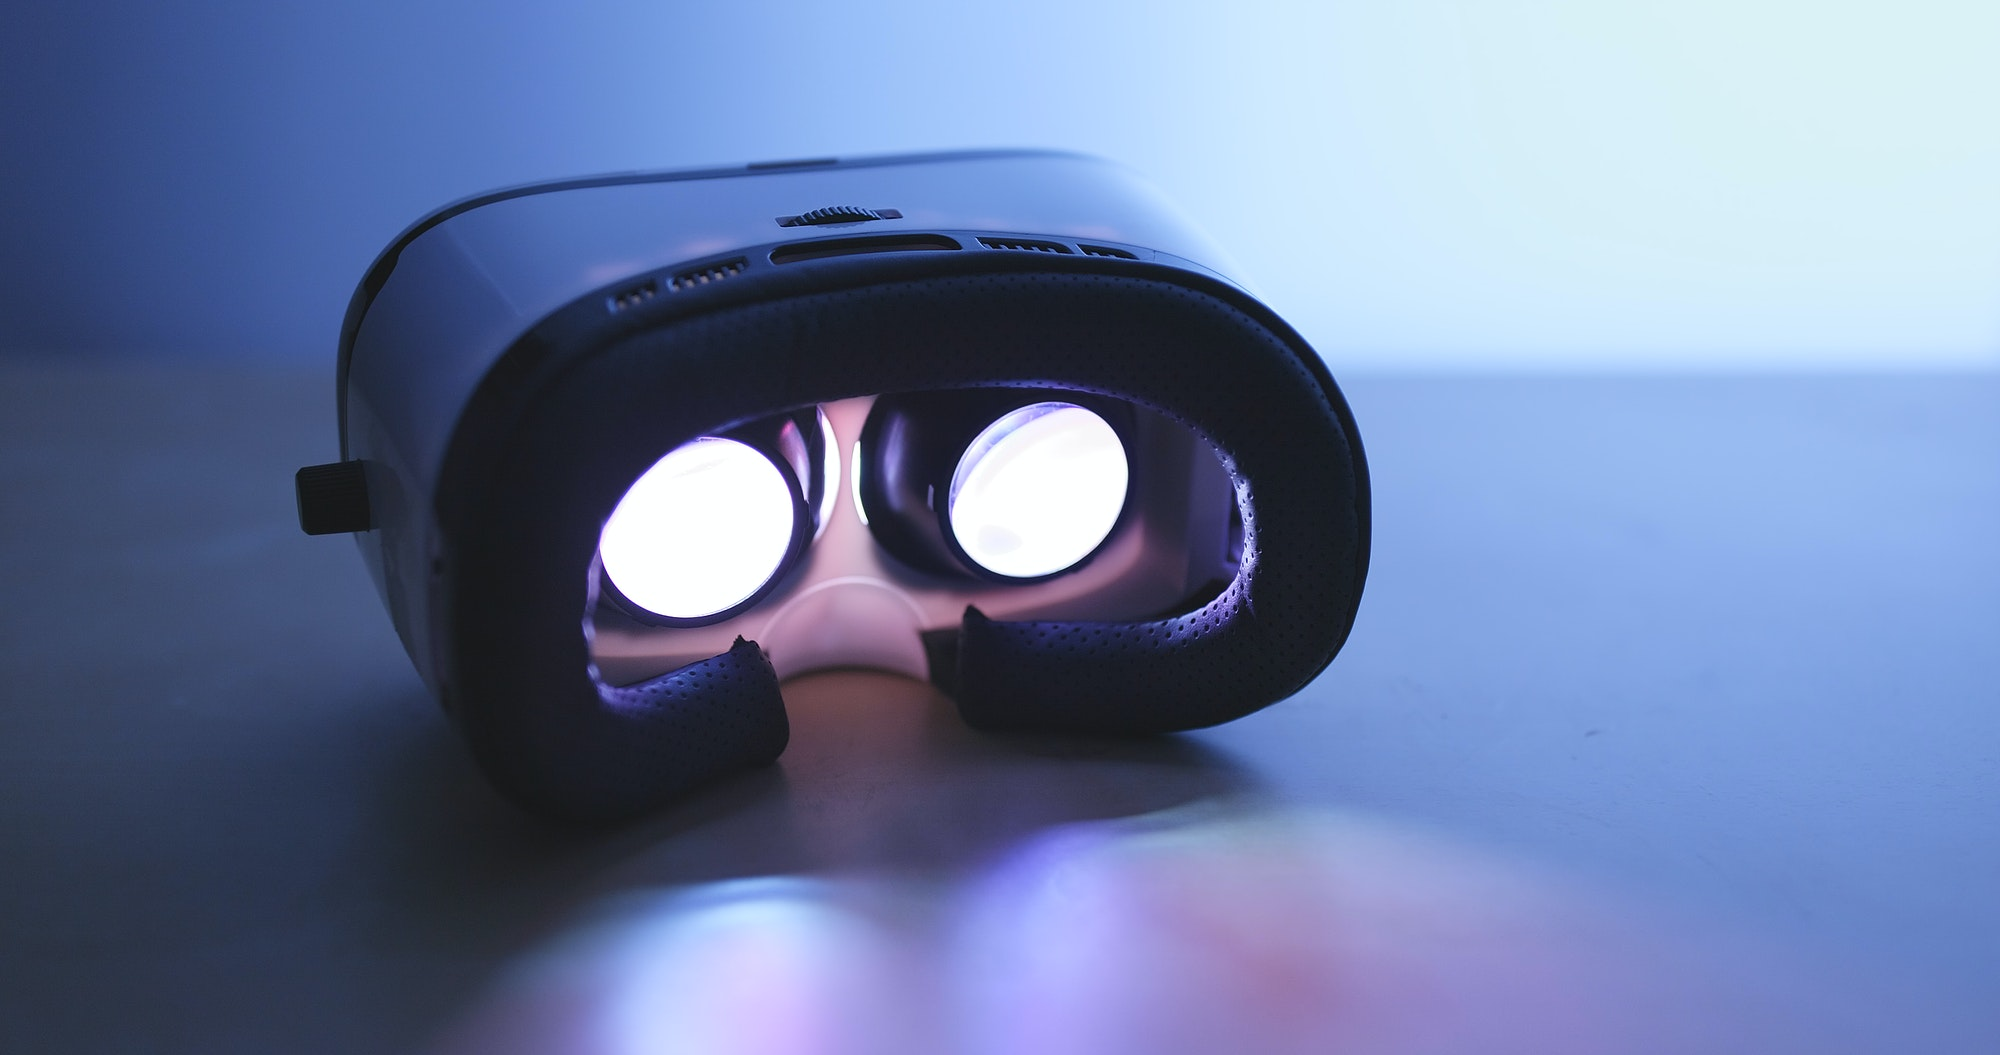 VR device playing movie inside